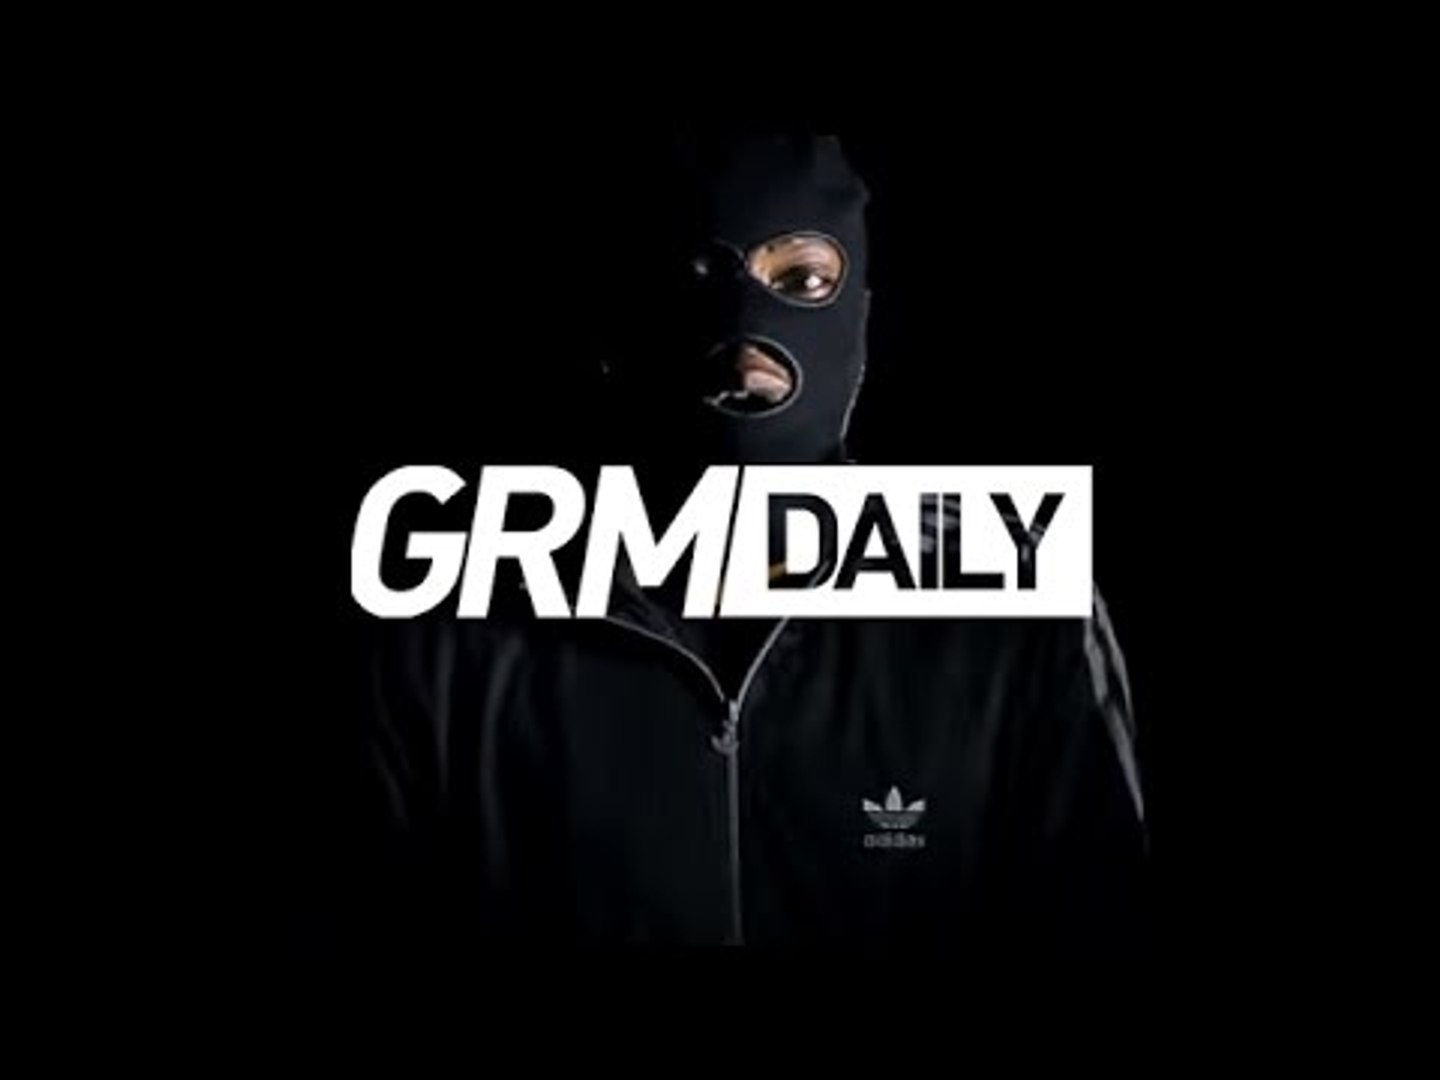 Rage Duppy Maker Music Video Grm Daily Video Dailymotion Missing lyrics by grm daily? rage duppy maker music video grm daily